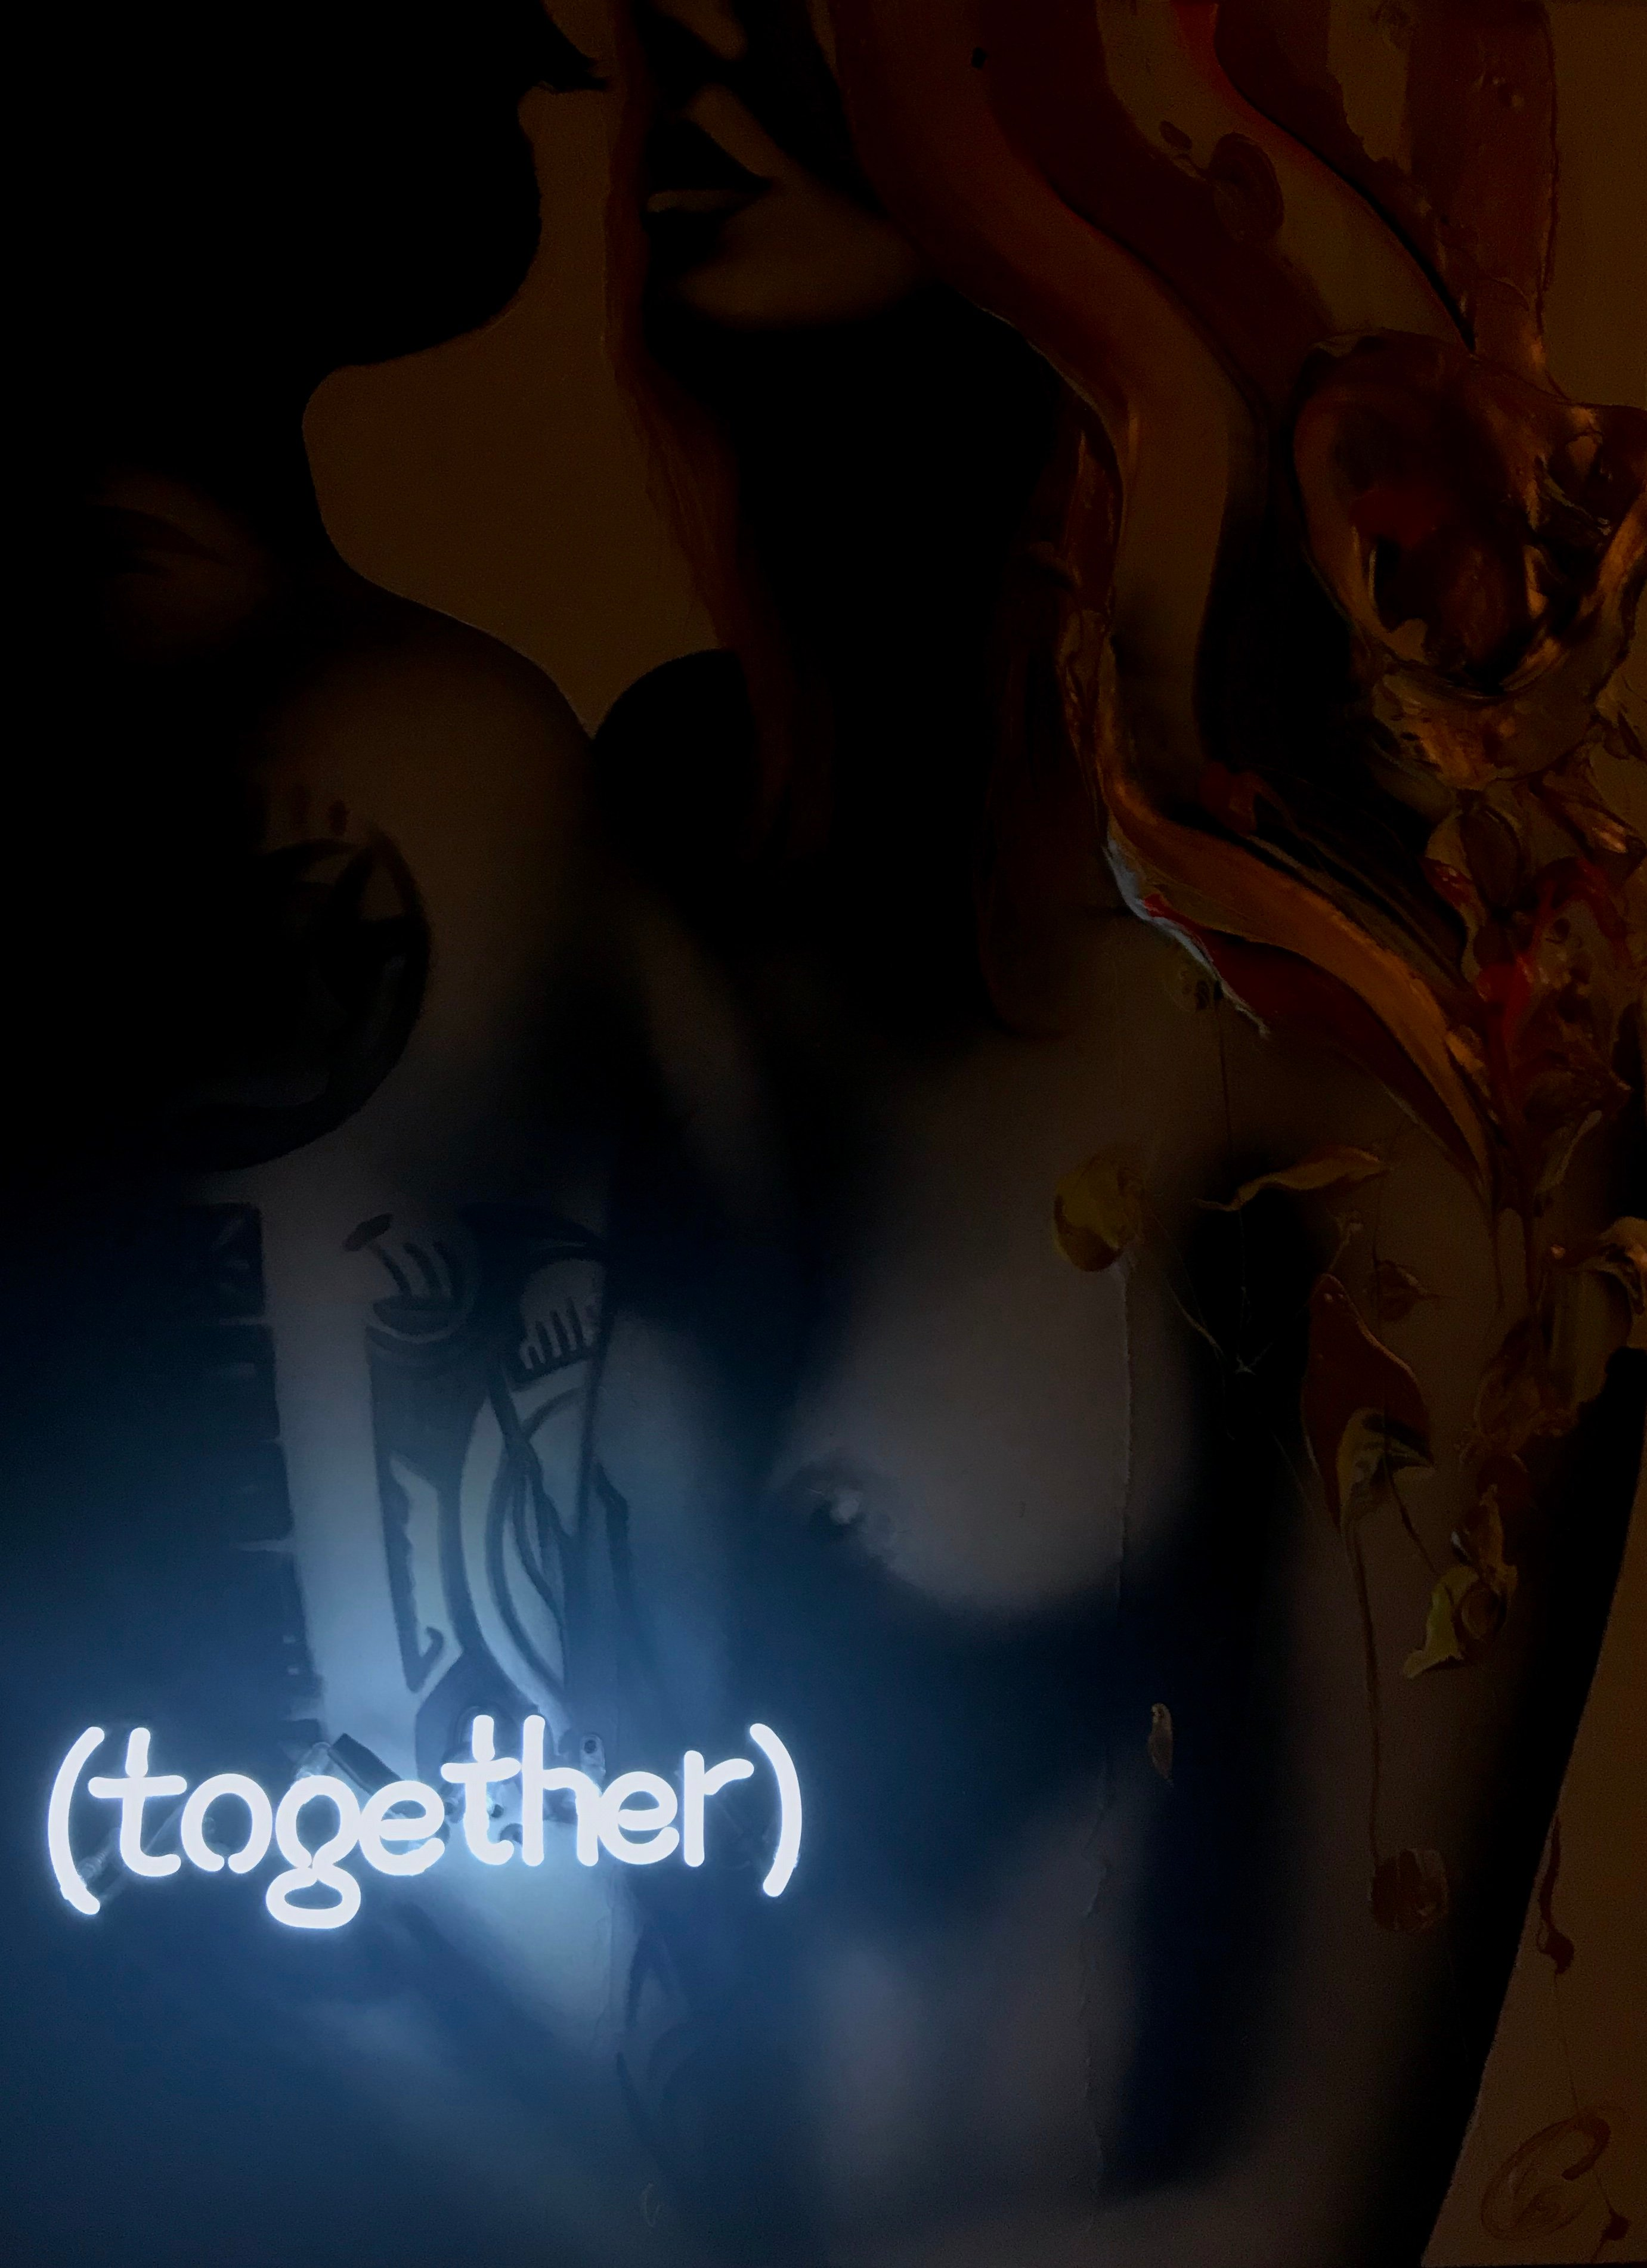 (Together) - Nuit